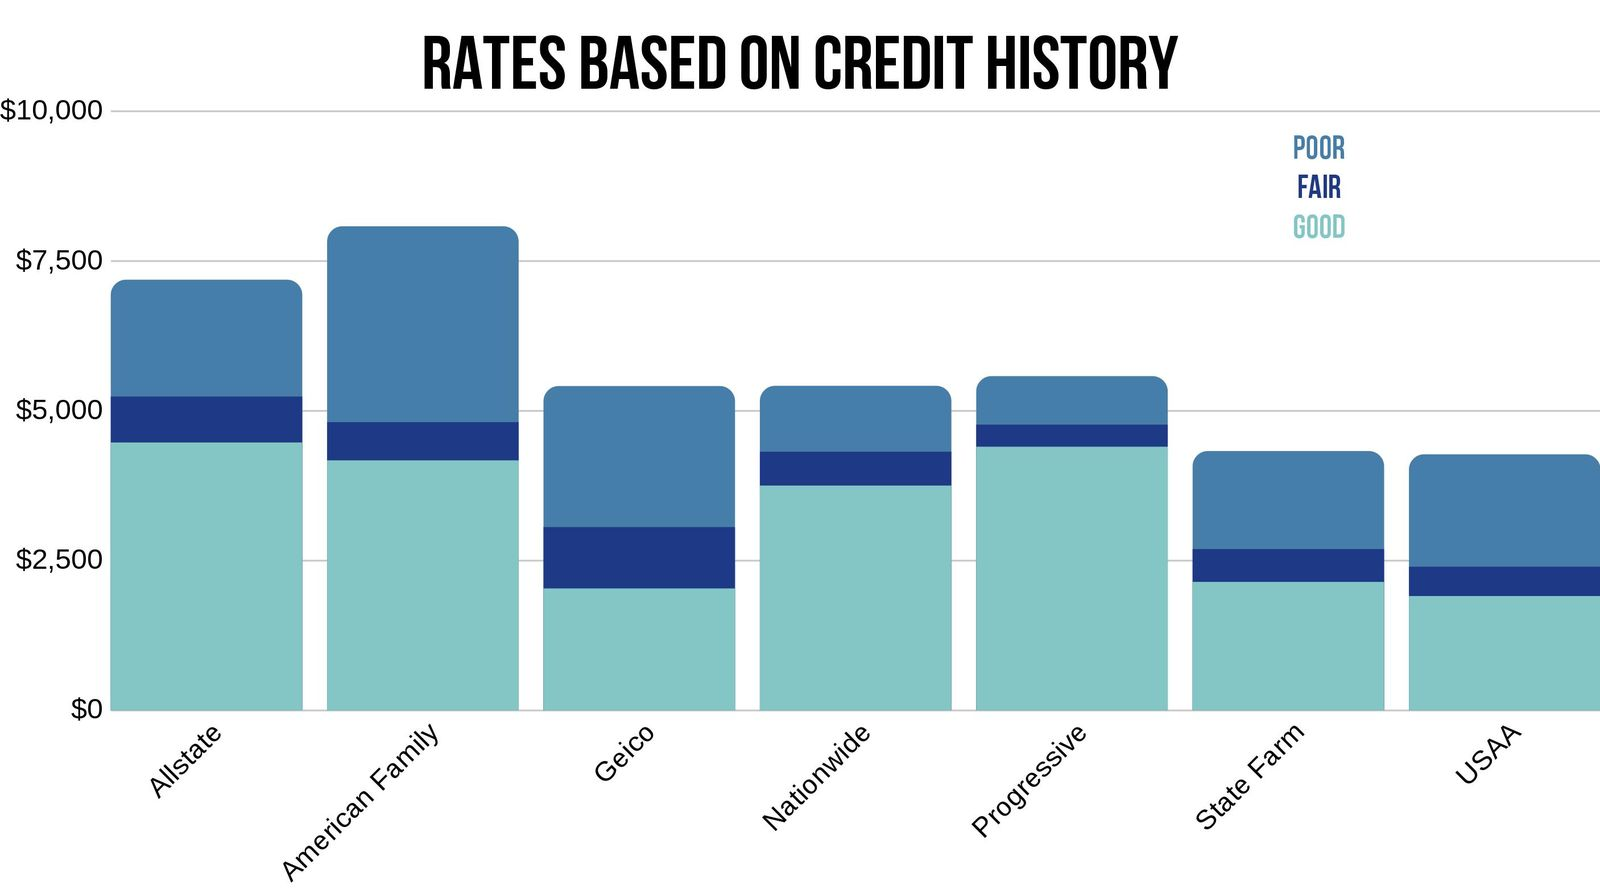 Car Insurance rates in Amarillo based on credit history